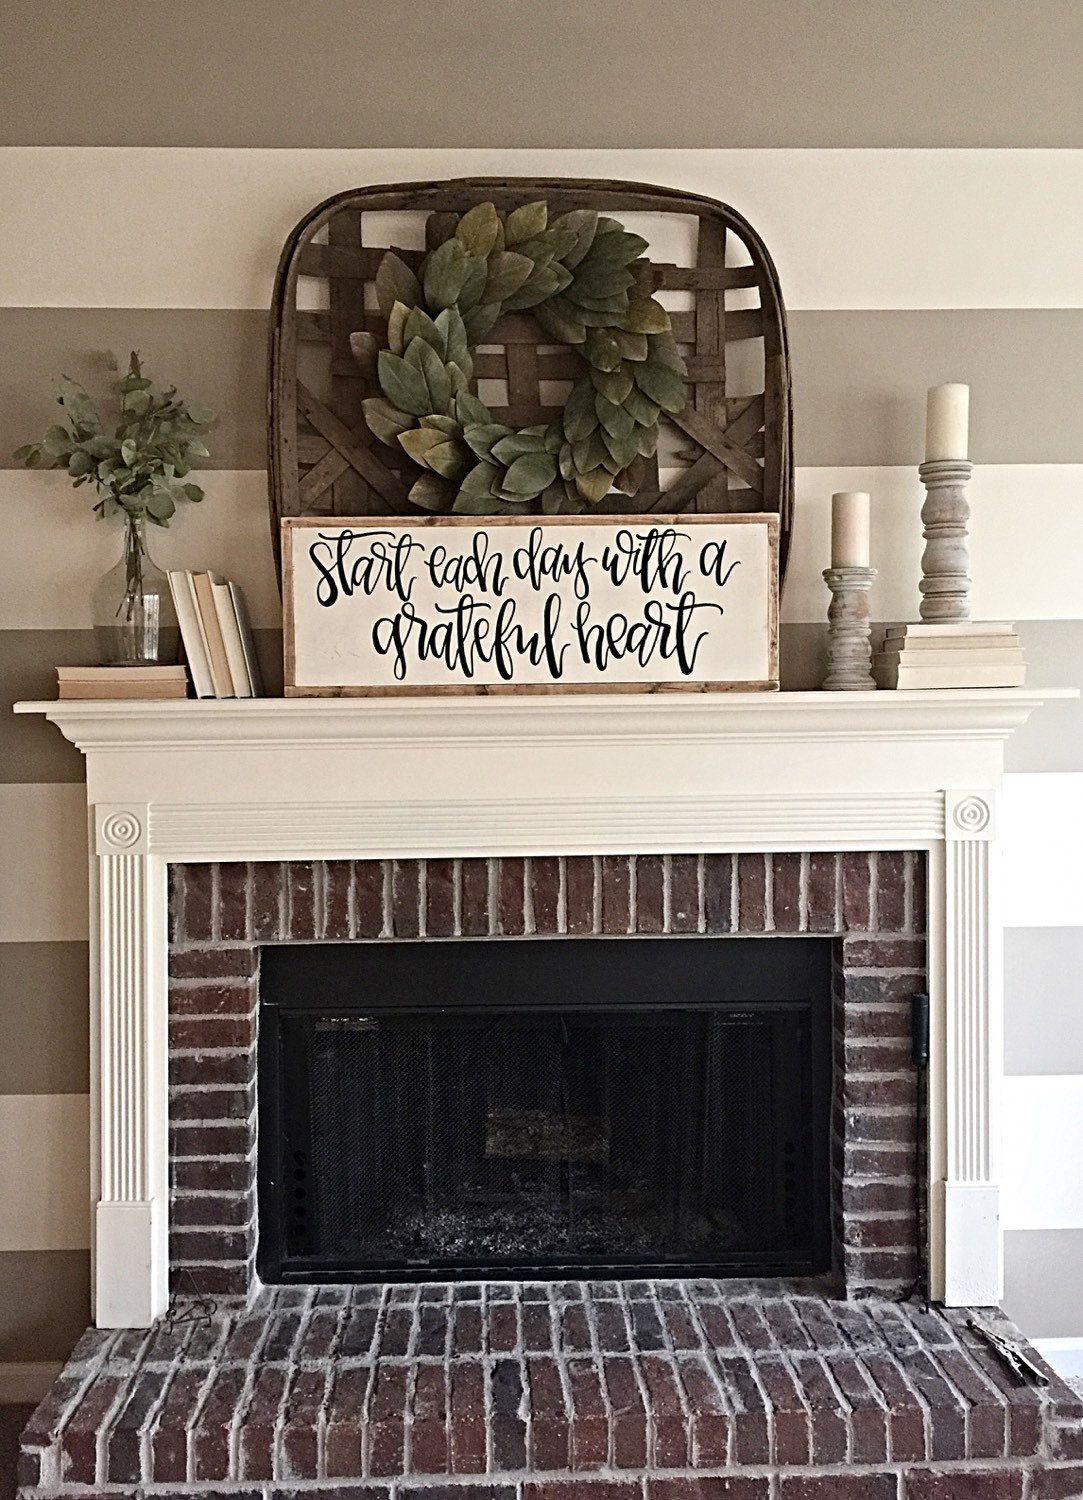 Live Gratefully   Grateful Heart   Home Decor   Hand Painted Sign   Rustic   Start Each Day with A Grateful Heart   Fixer Upper   Farmhouse